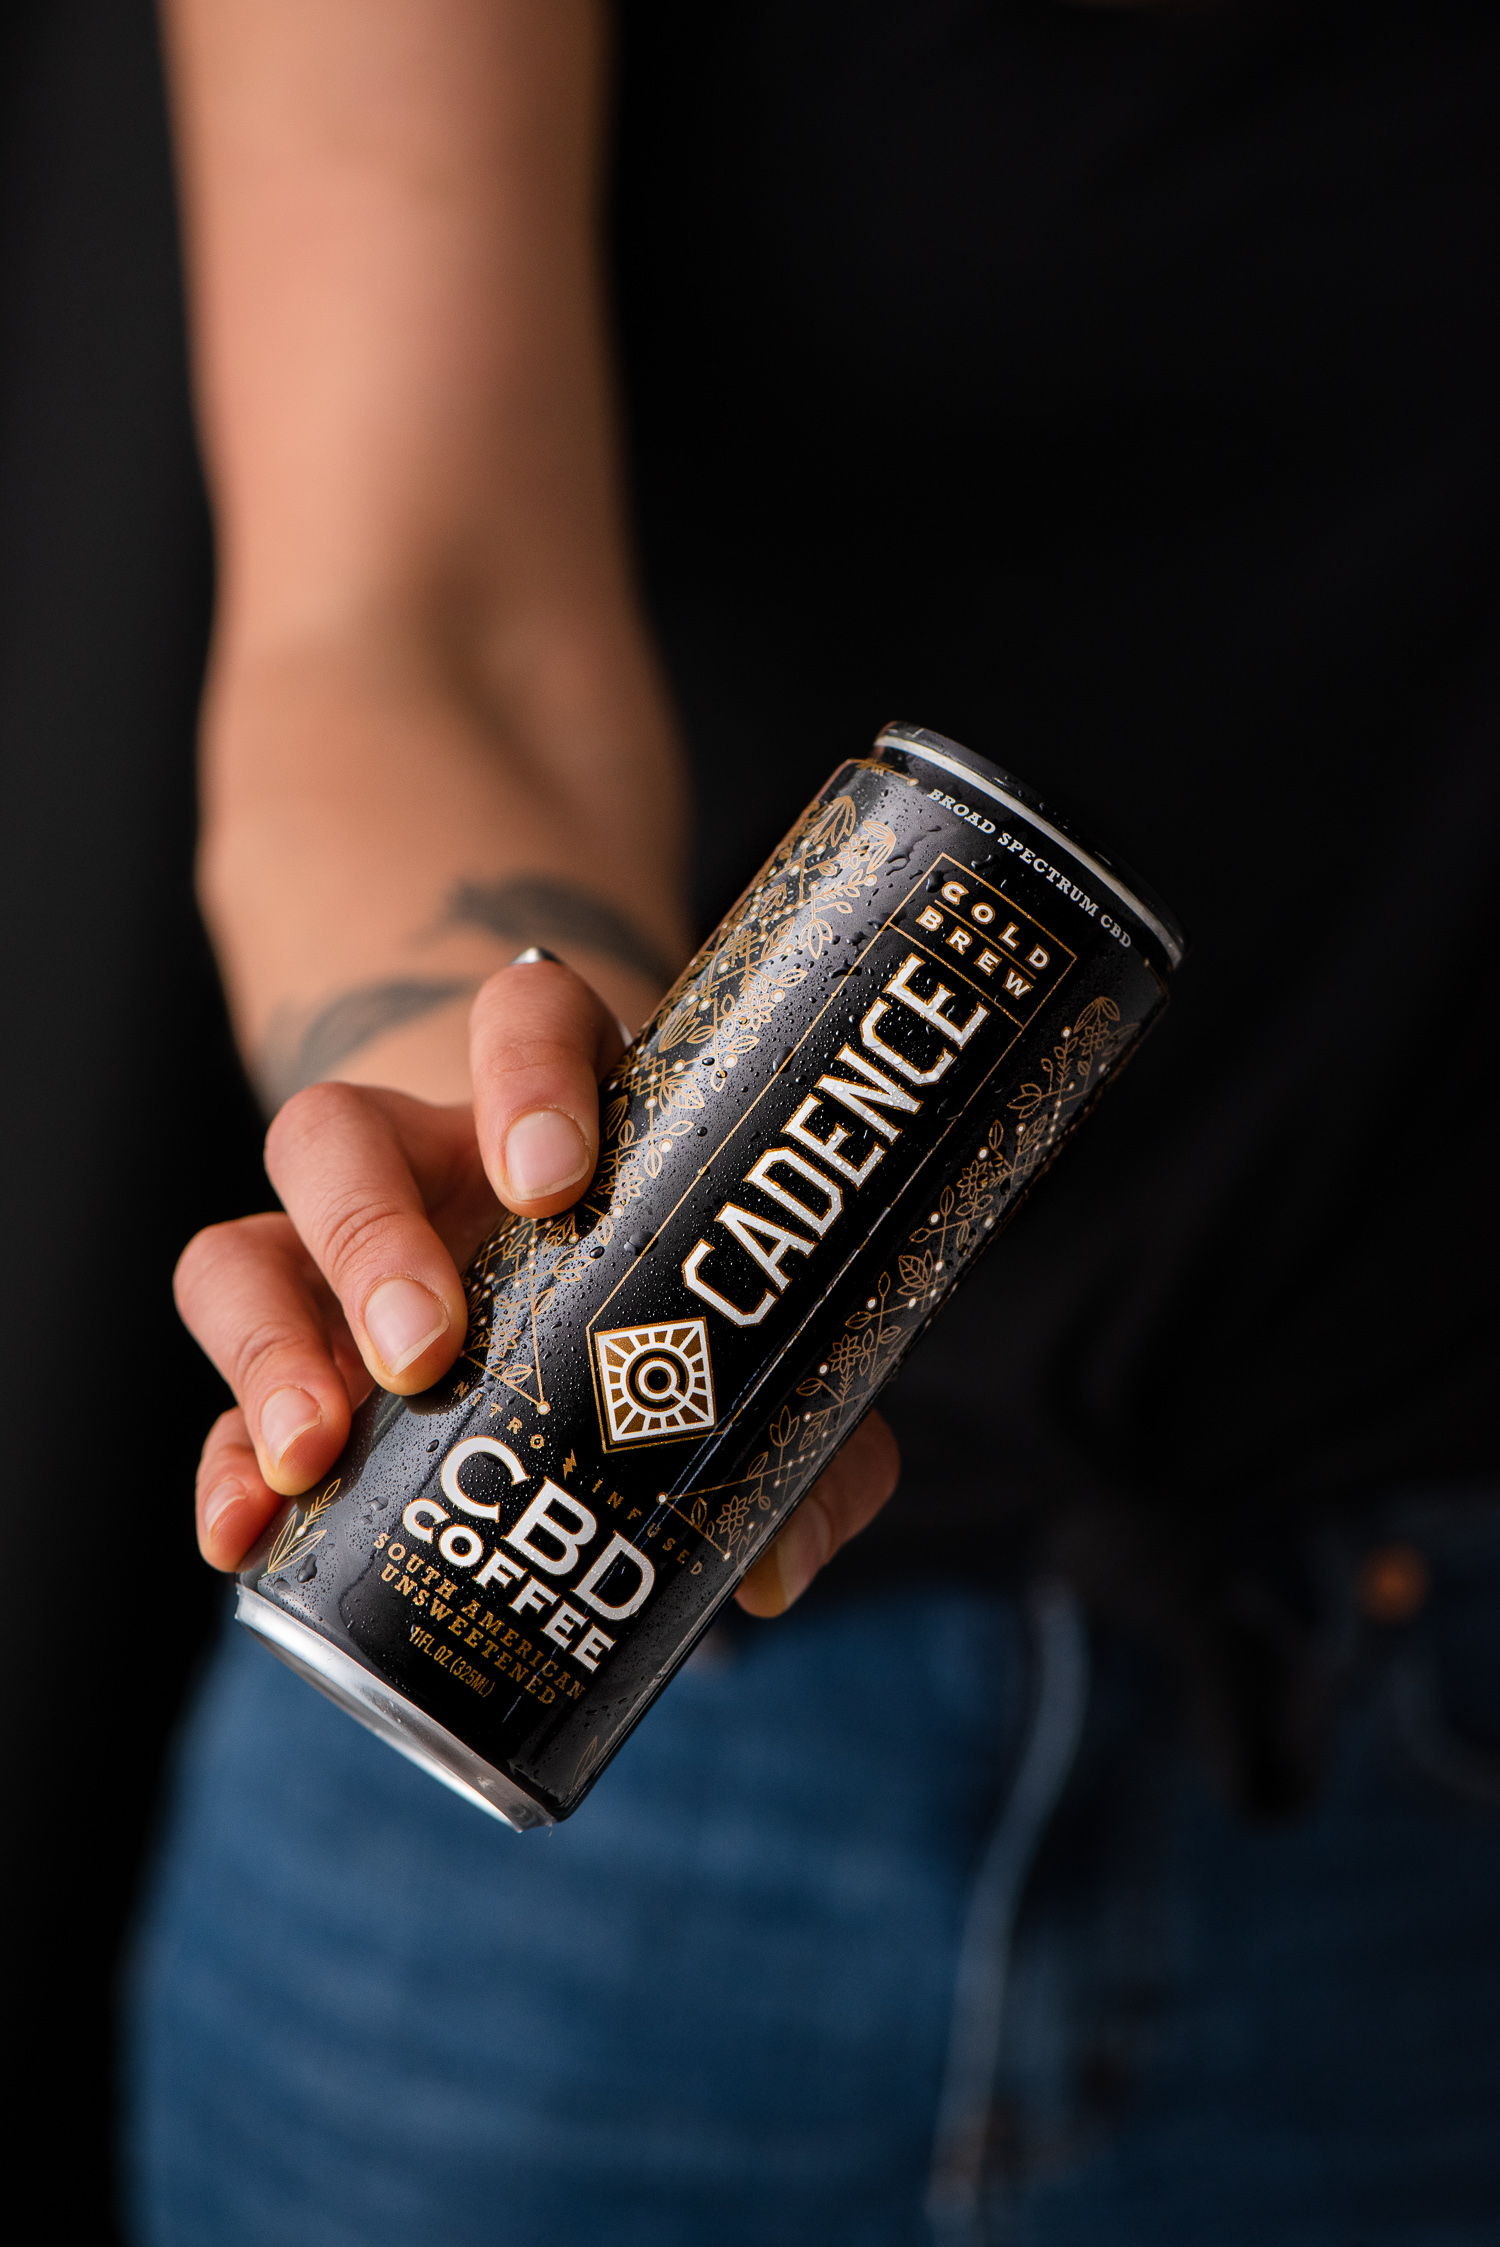 product-photography-cans-2.jpg